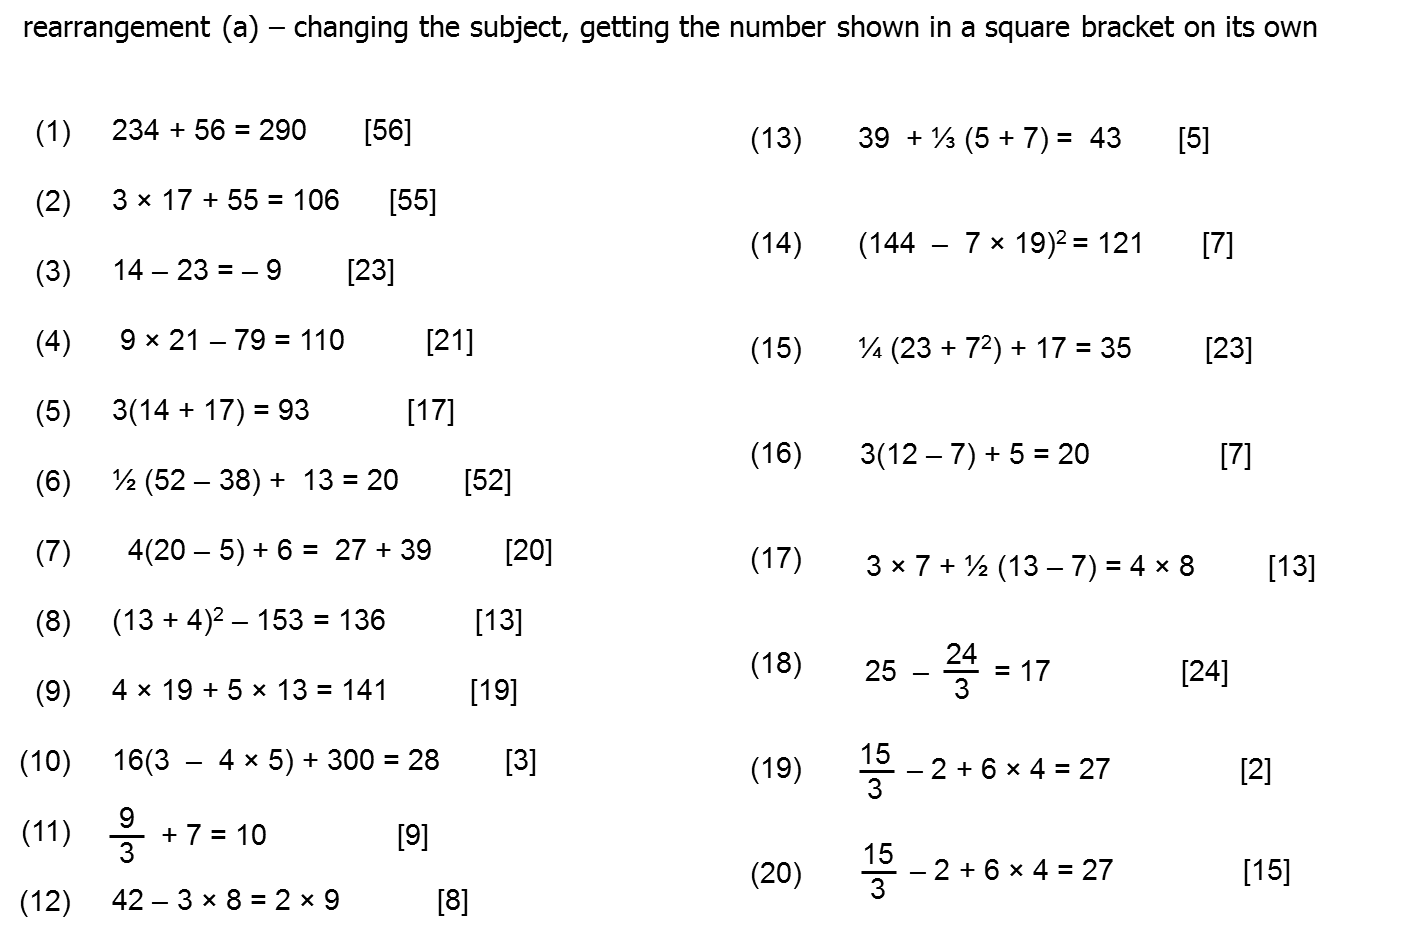 worksheet Rearranging Equations Worksheet question of the week 4 rearranging formula mr barton maths blog picture2